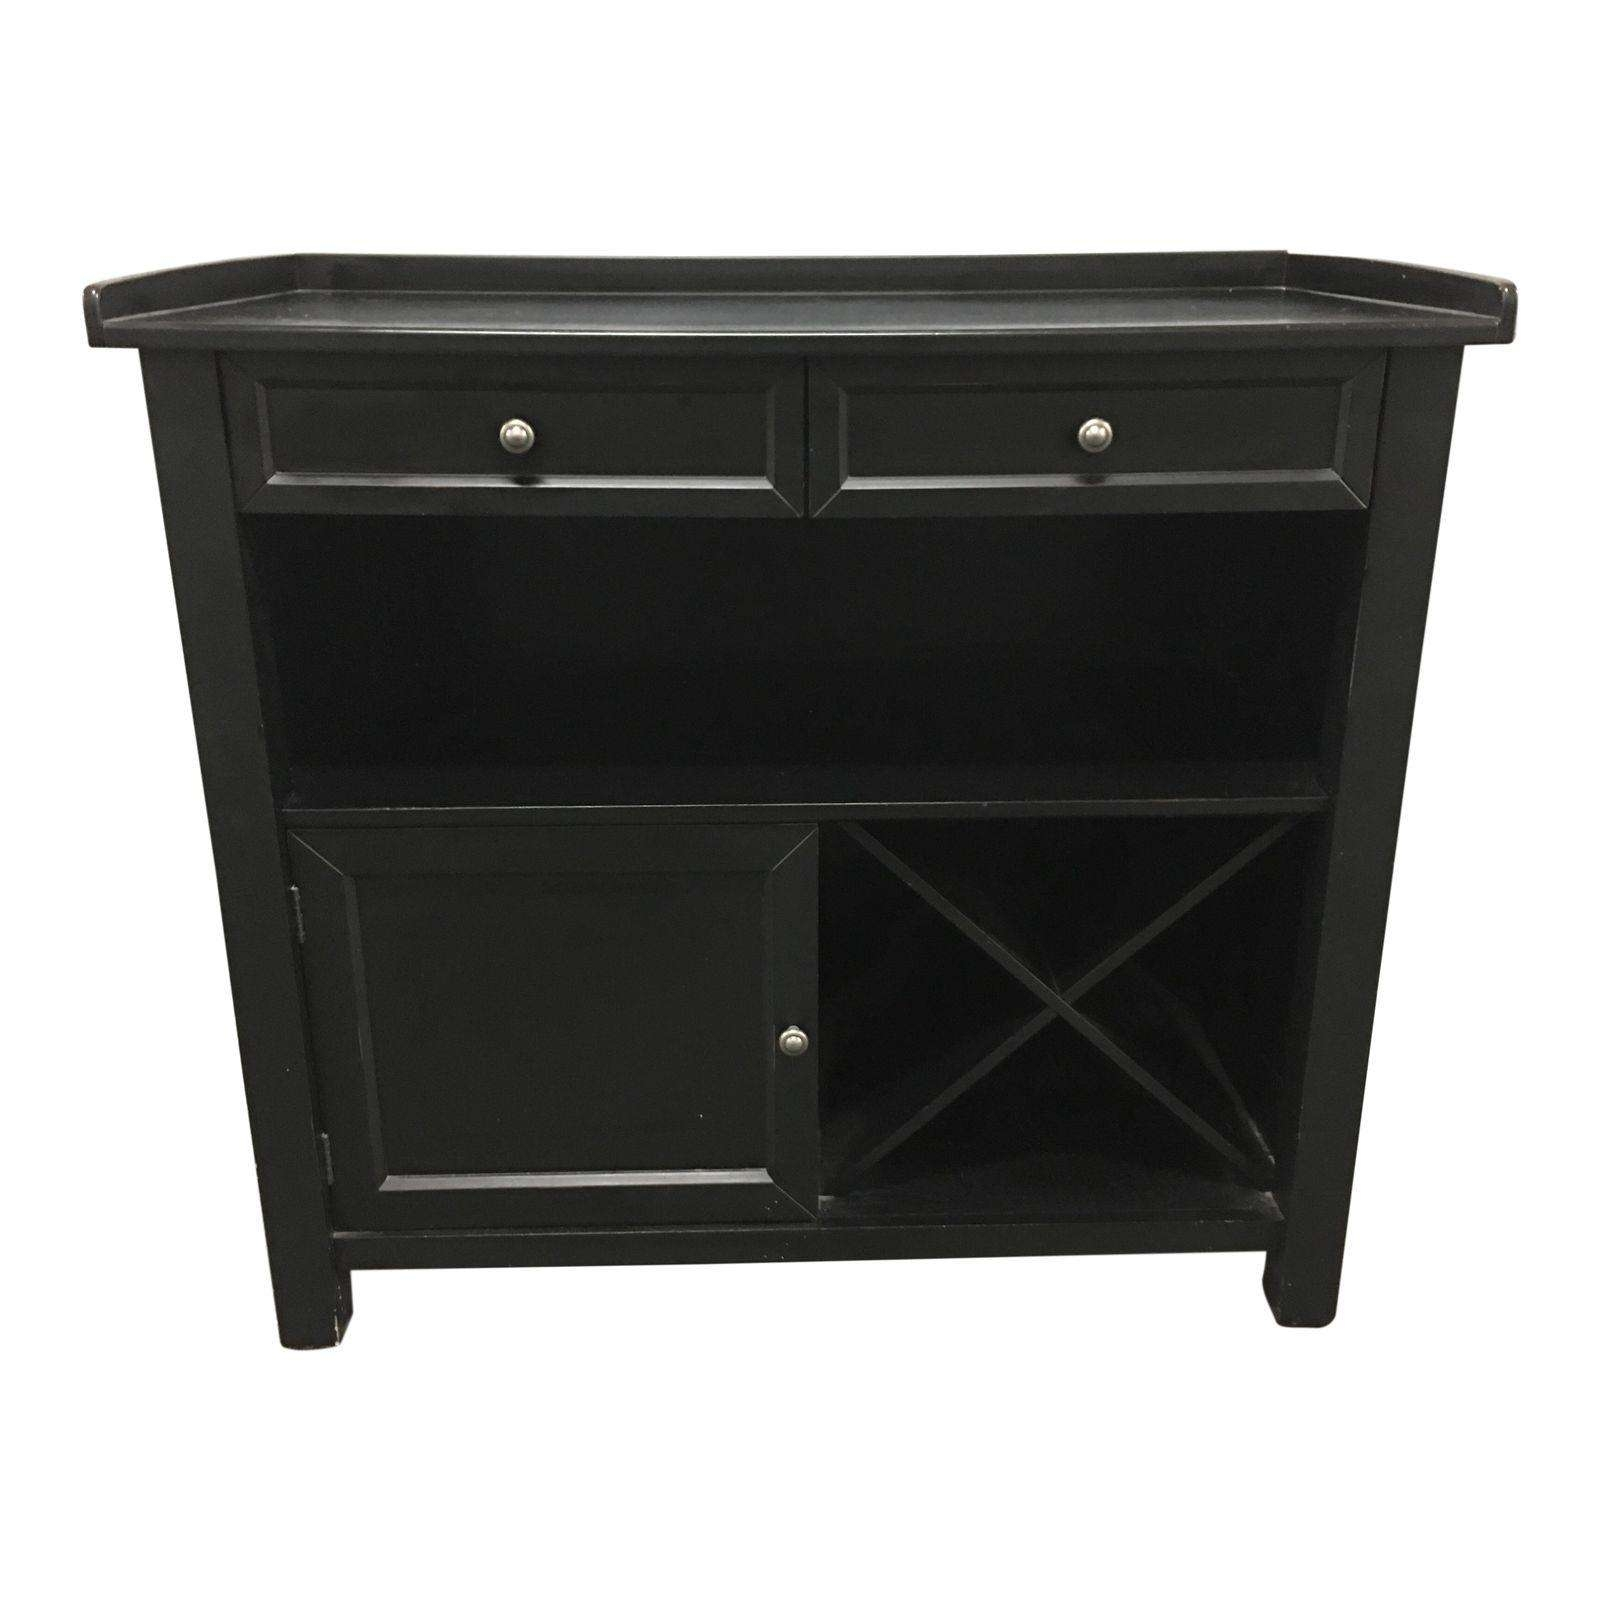 Pottery Barn Black Sideboard Buffet – Design Plus Gallery For Pottery Barn Sideboards (View 18 of 20)